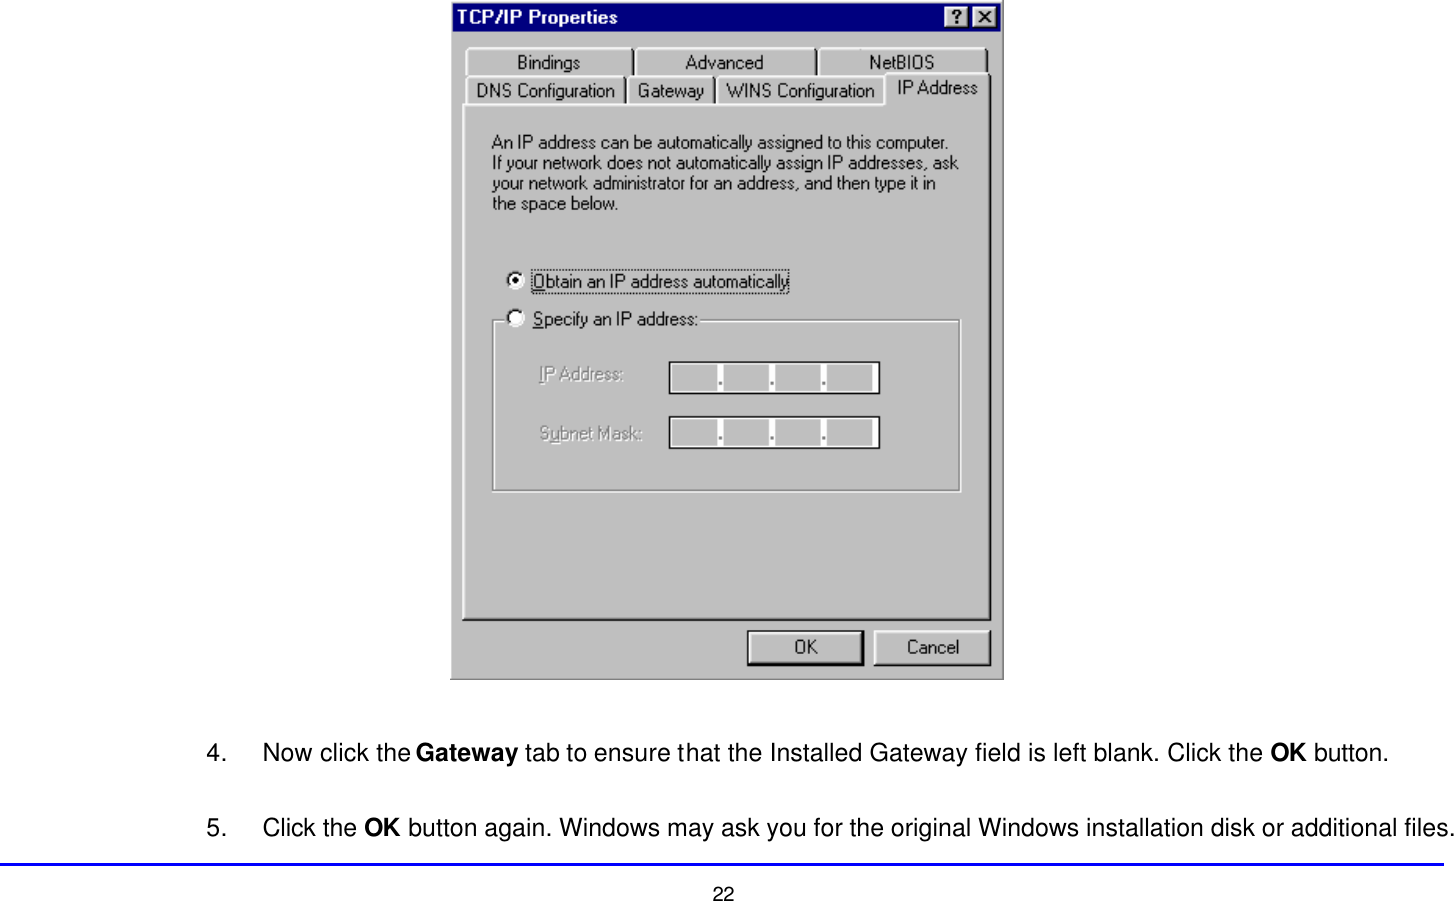 22   4. Now click the Gateway tab to ensure that the Installed Gateway field is left blank. Click the OK button.  5. Click the OK button again. Windows may ask you for the original Windows installation disk or additional files.